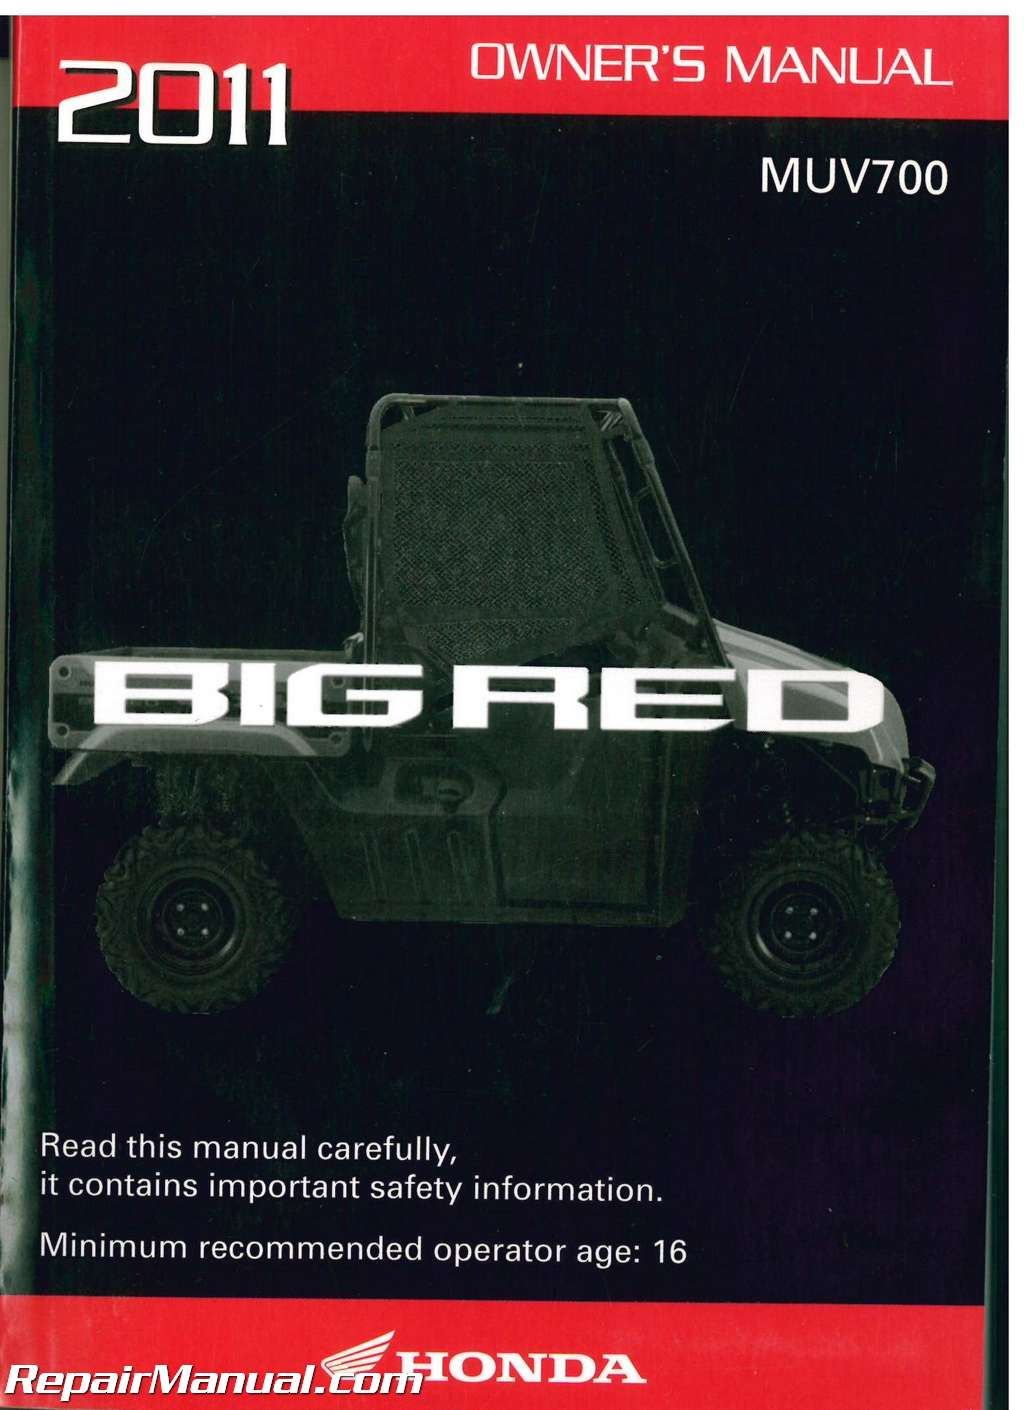 2011 Honda MUV 700 Big Red Owners Manual